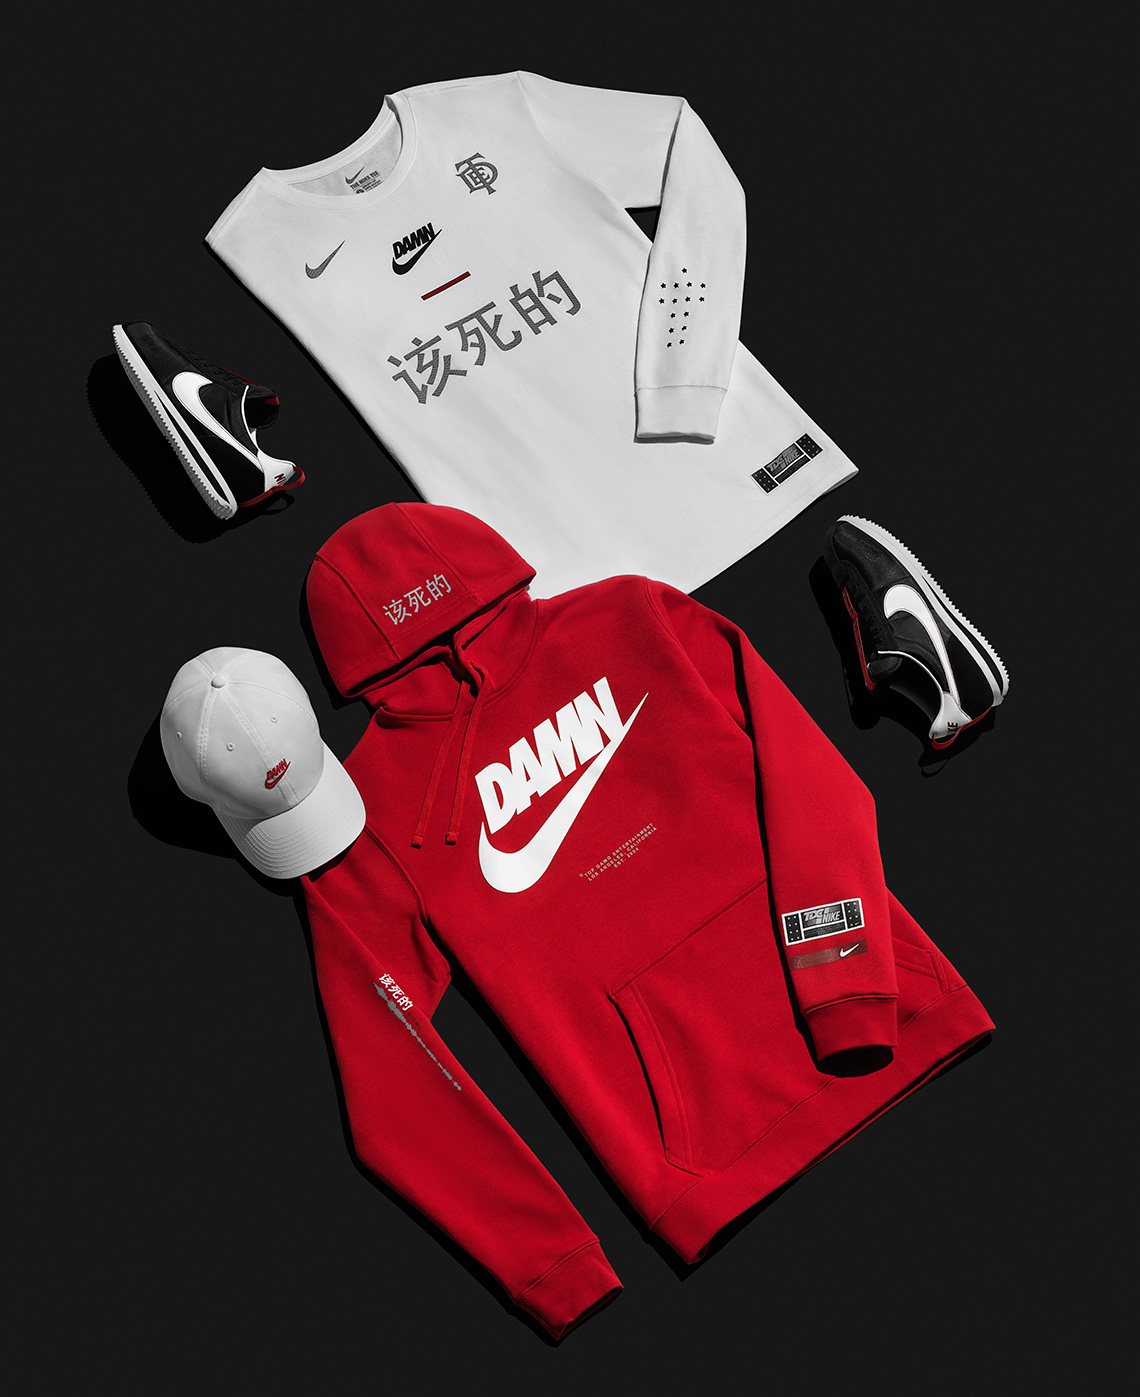 Where to Find a Nike Promo Code or Coupons The best way to save money at Nike is to look out for coupons that apply to already reduced items. Nike is always adding new items to .